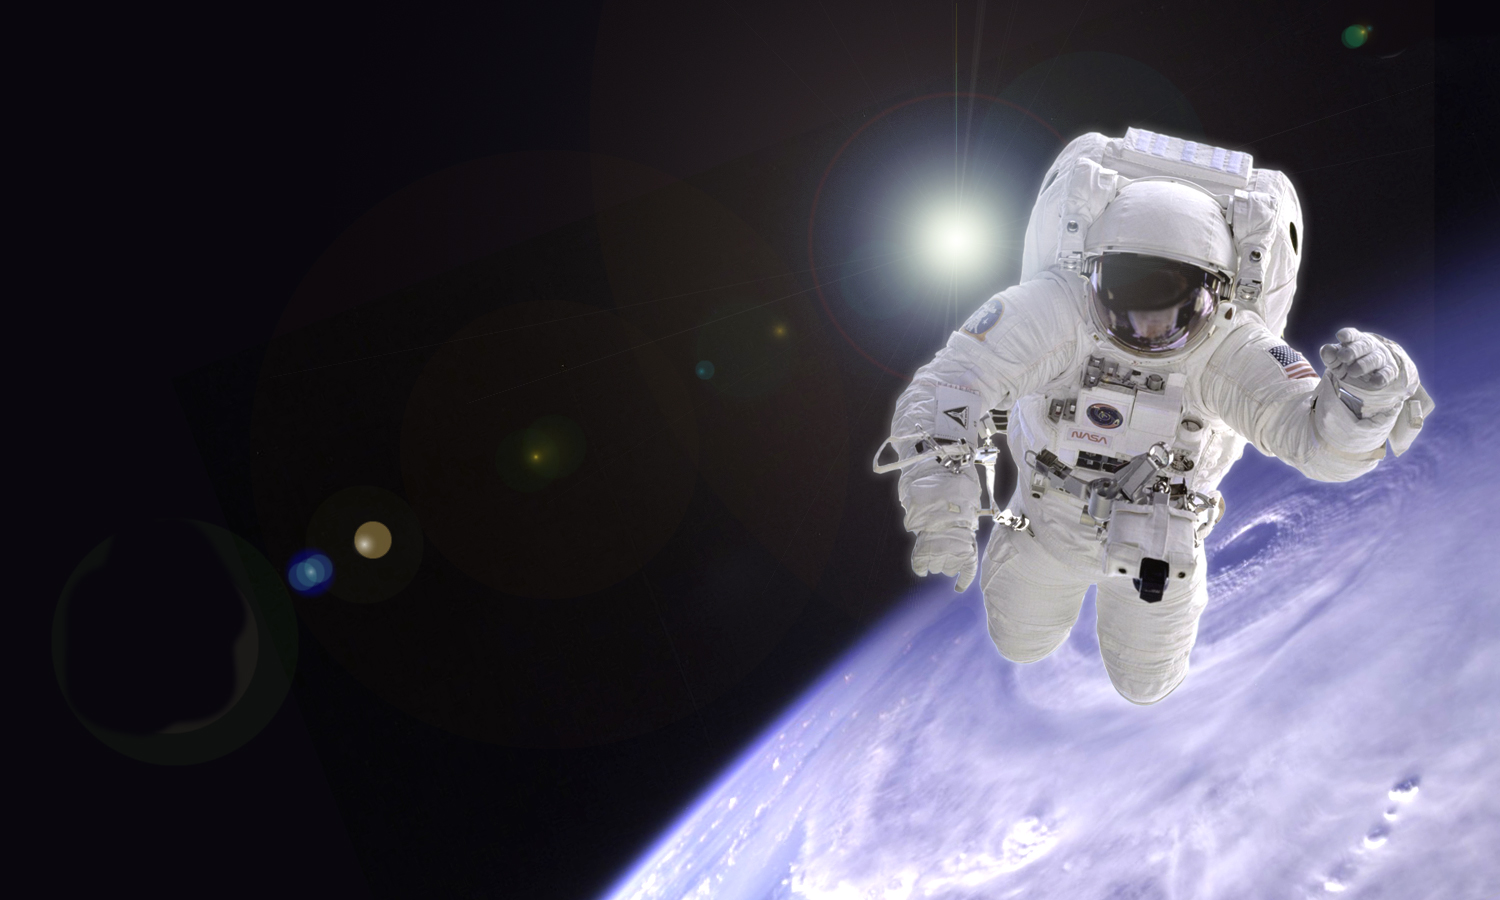 an astronaut floating in space - photo #23